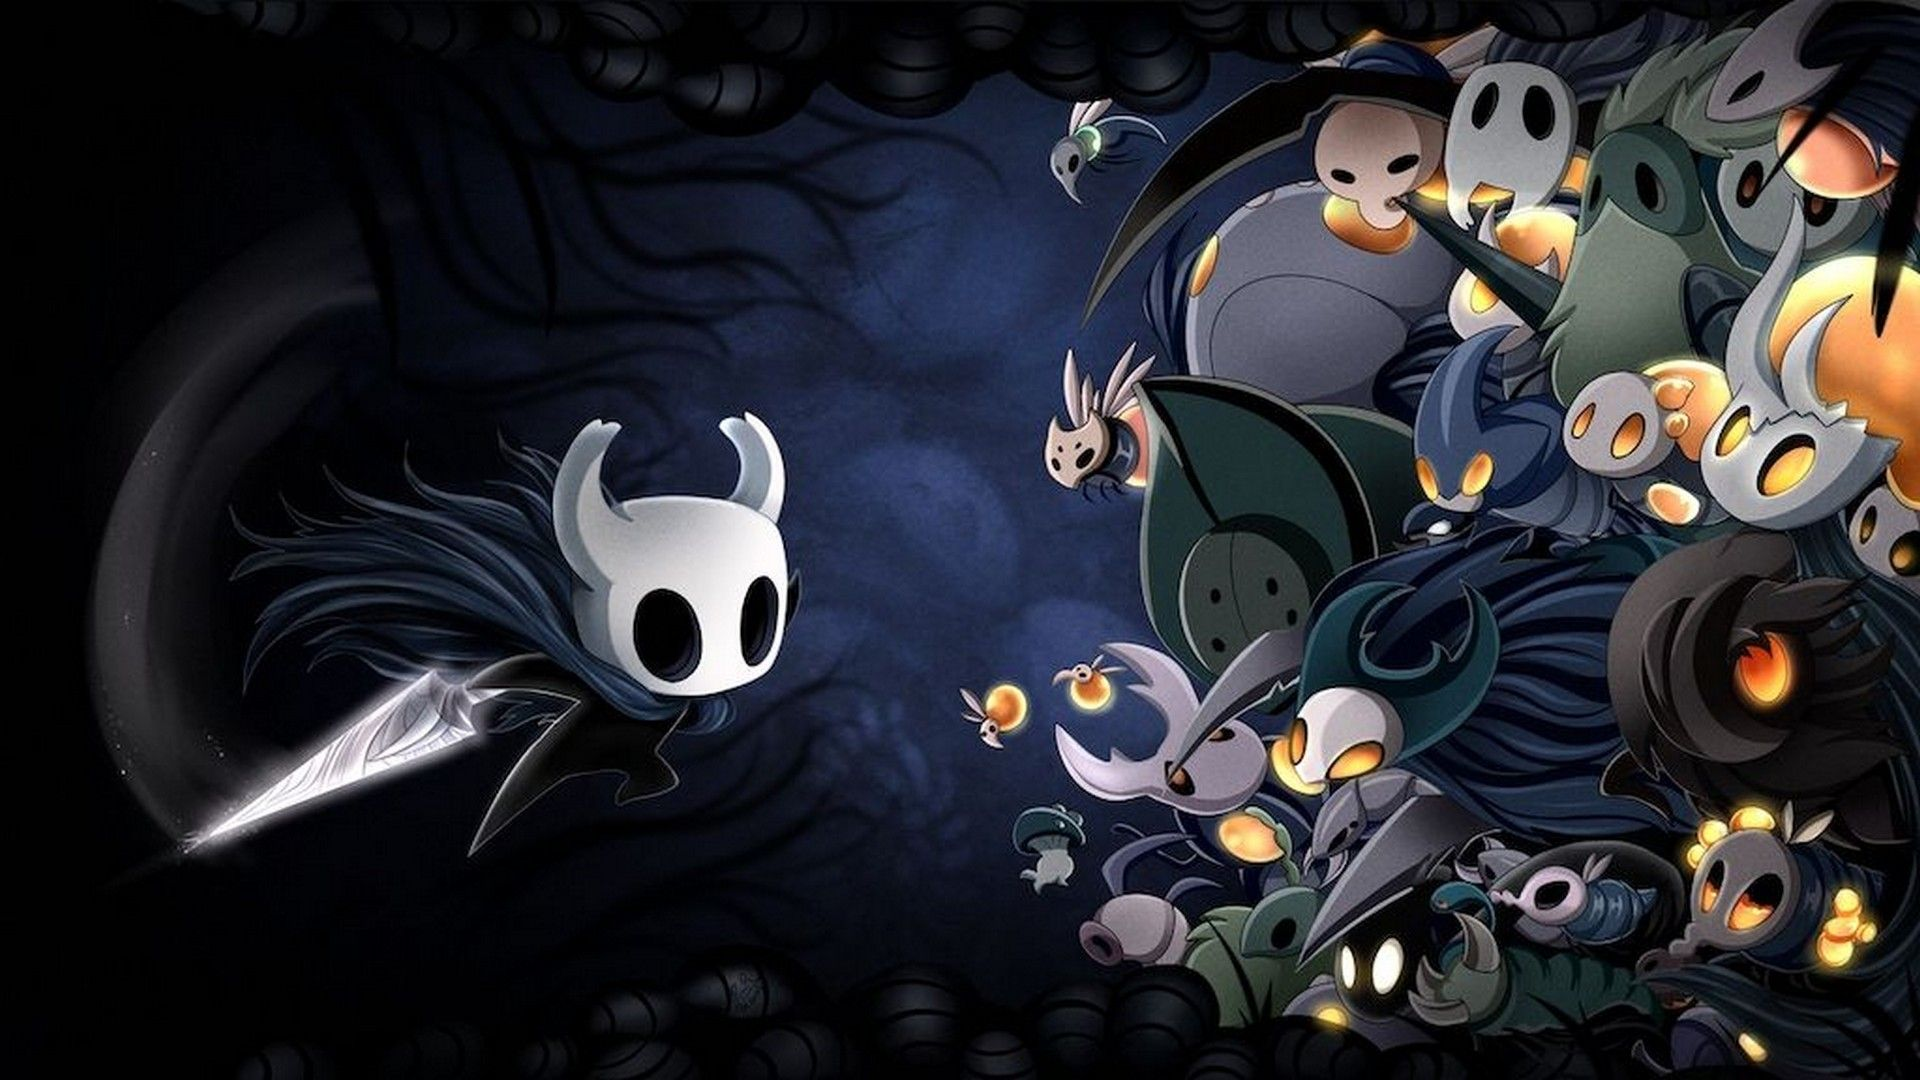 Wallpaper Hollow Knight Best Wallpaper Hd In 2020 Hollow Art Hollow Night Android Wallpaper